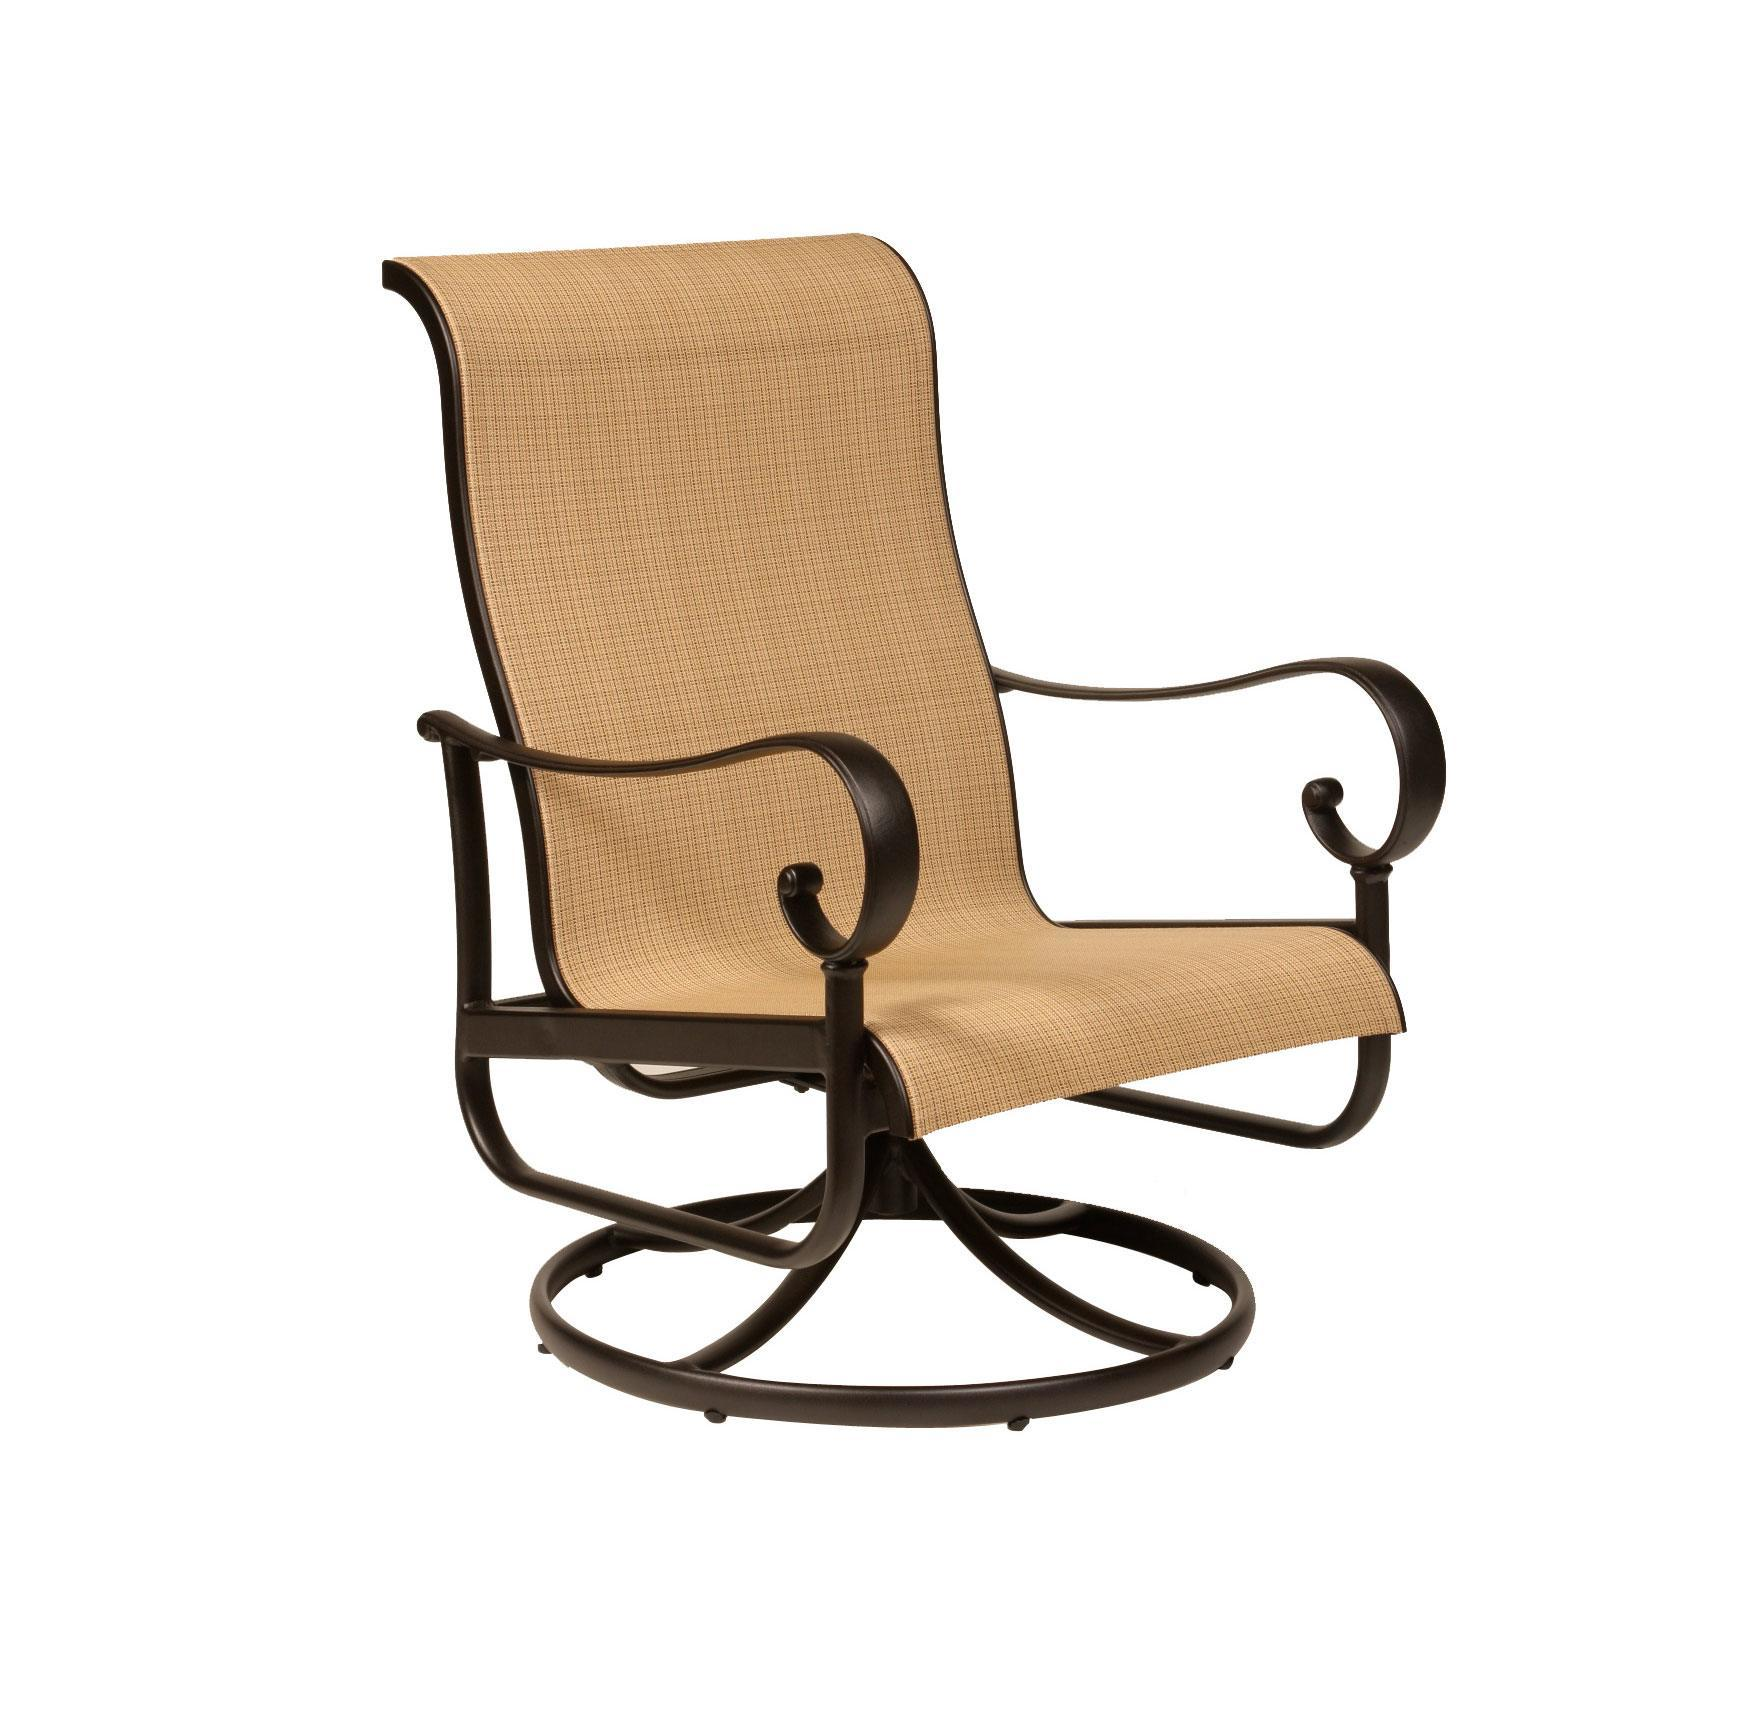 Alumont Santa Barbara Sling Club Swivel Rocker Leisure